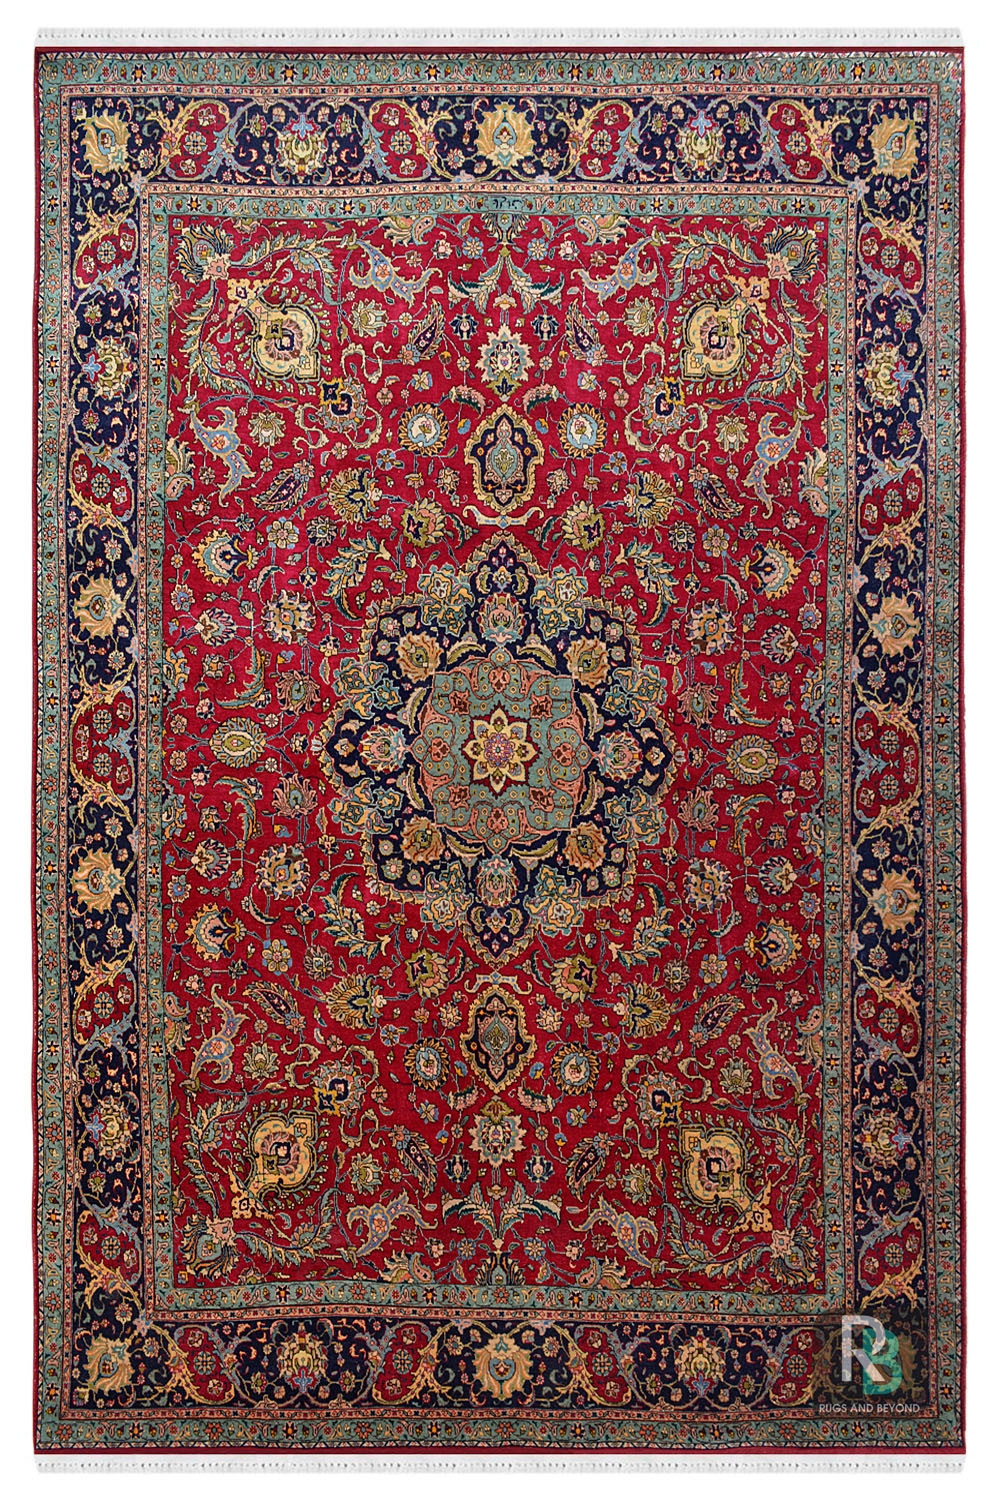 Hand Knotted Red Central Wool Carpet In Pure Wool And Cotton